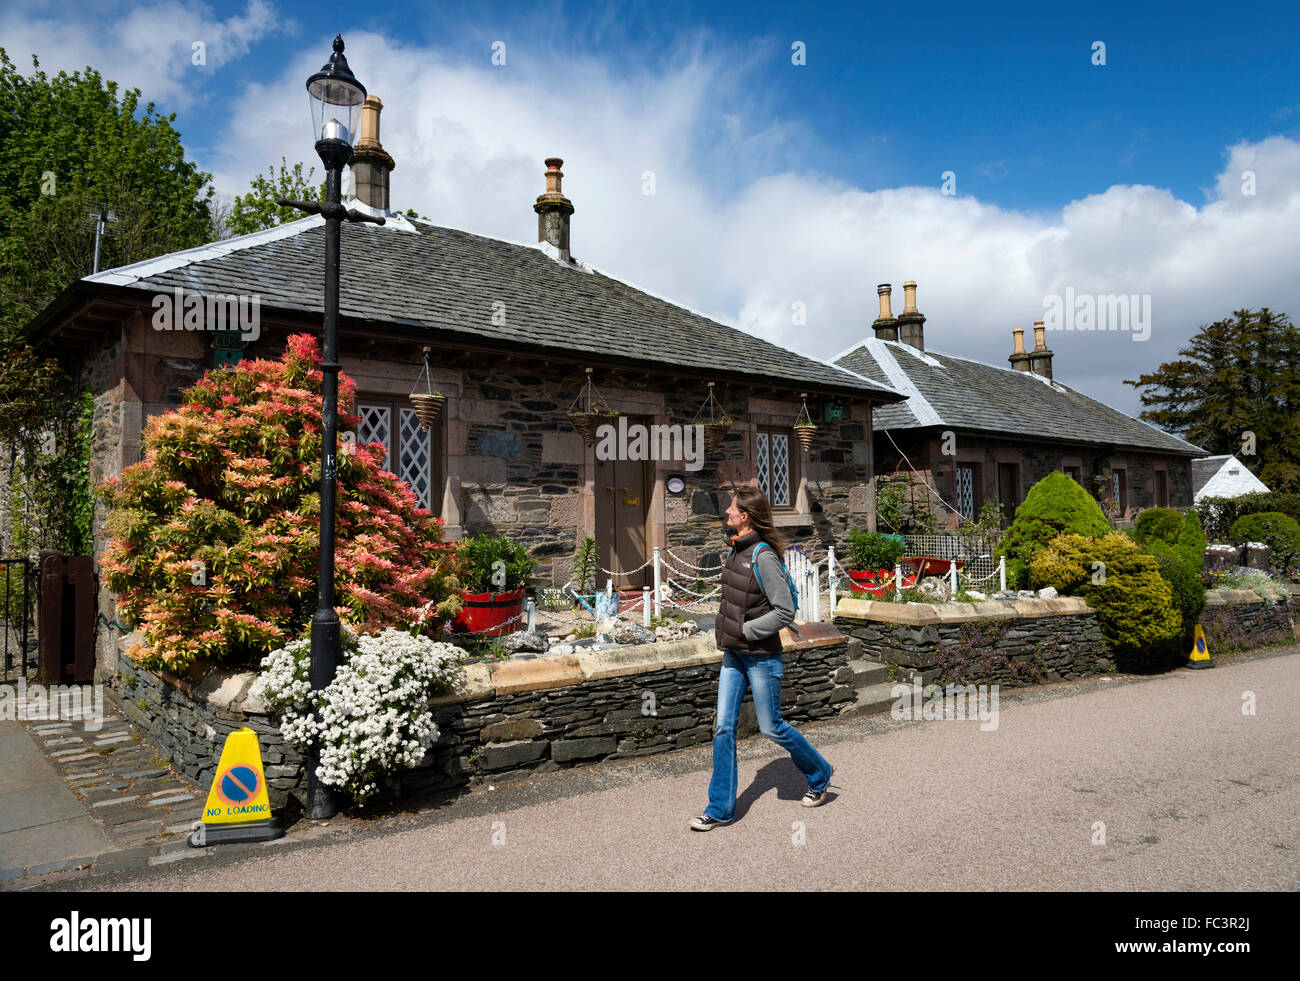 The pretty main street in Luss village on the banks of Loch Lomond - Stock Image